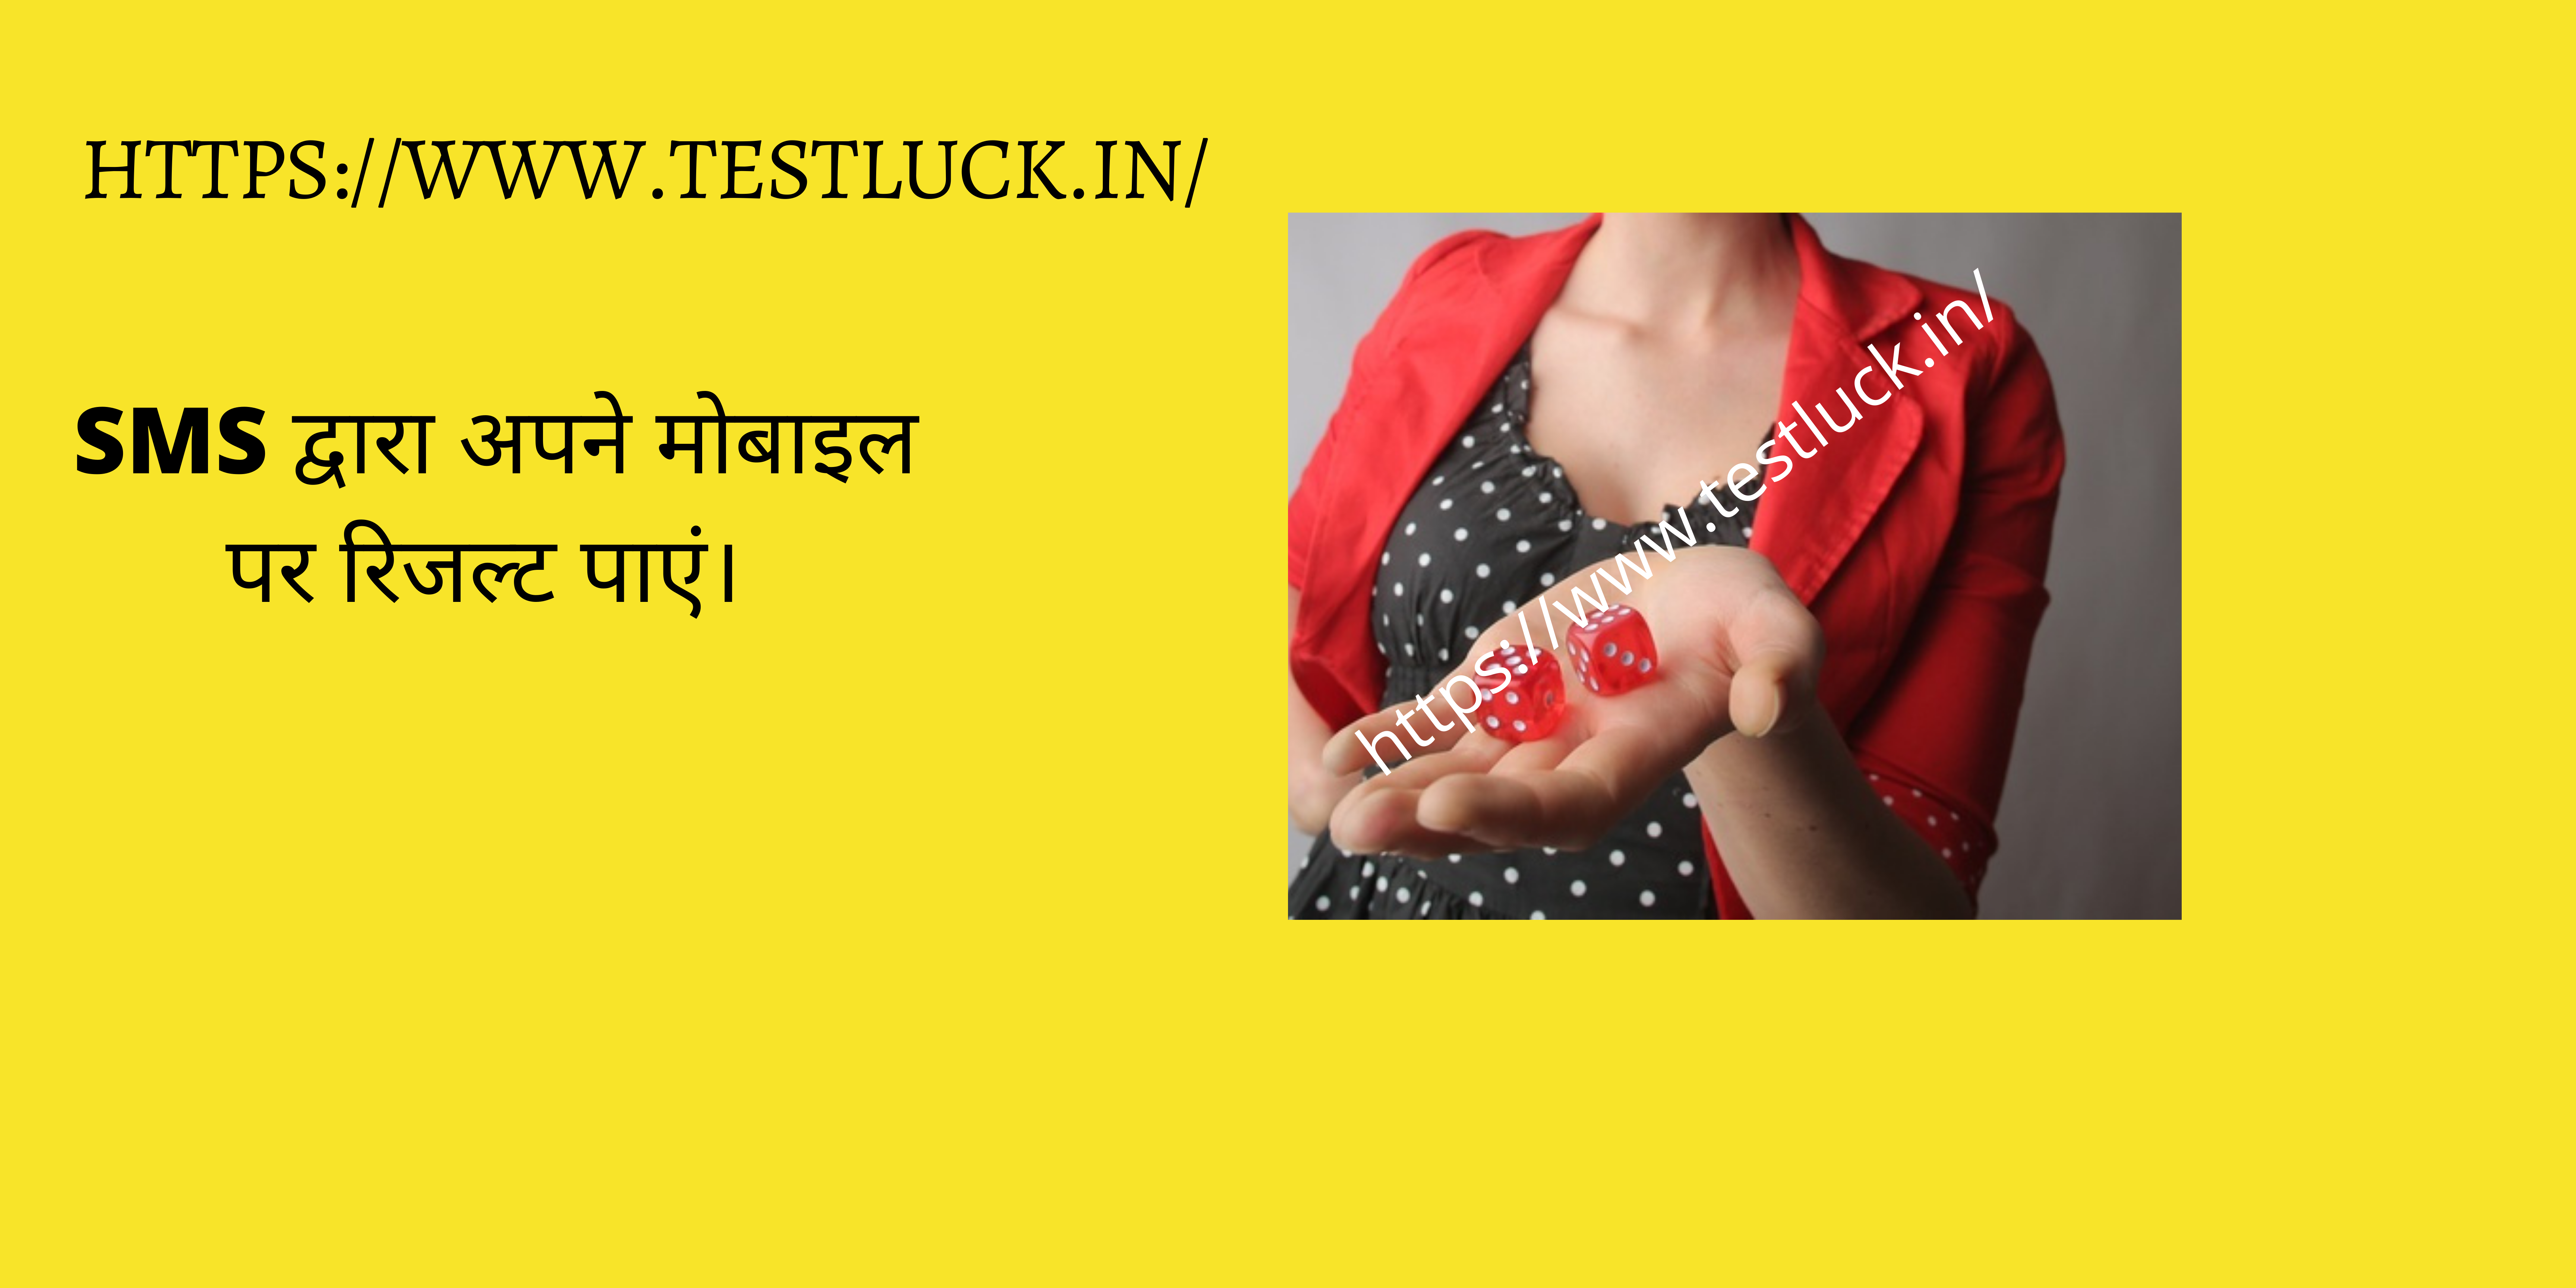 Test Luck Cover Image